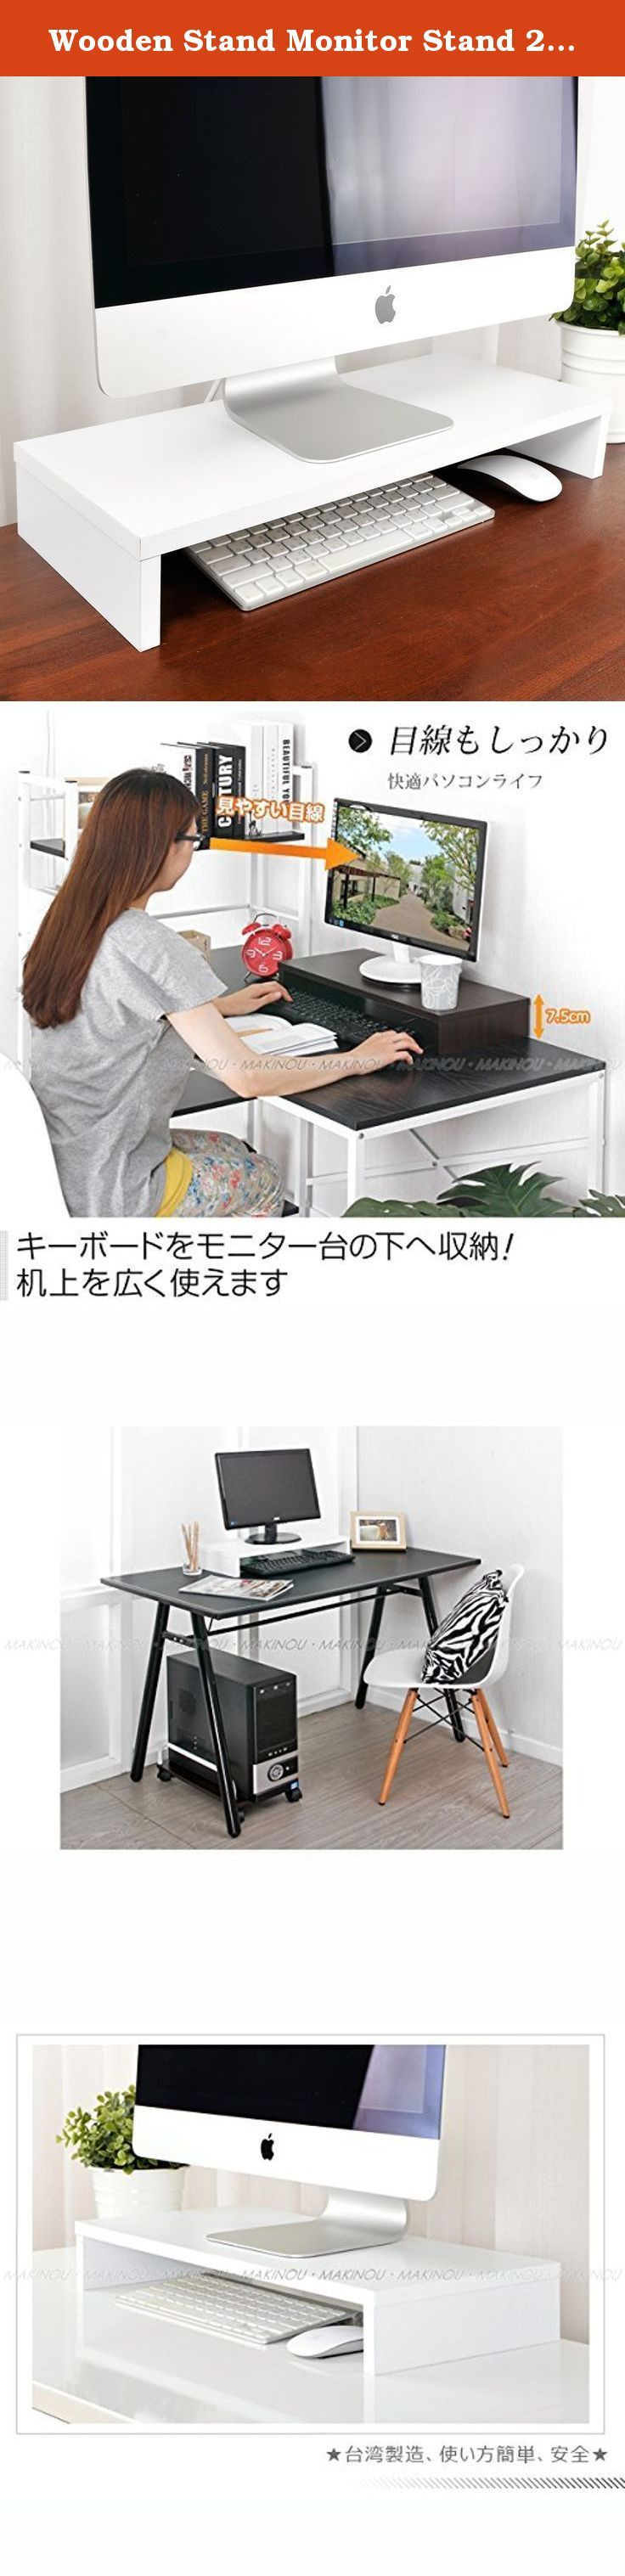 Wooden Stand Monitor Stand 21 Inches Long and Nearly 3.5 Inches Desktop Screen Frame Perfect For Office & Home TV (White). The stand for computer monitor, can hidden keyboard when not in use, to add more your work space.